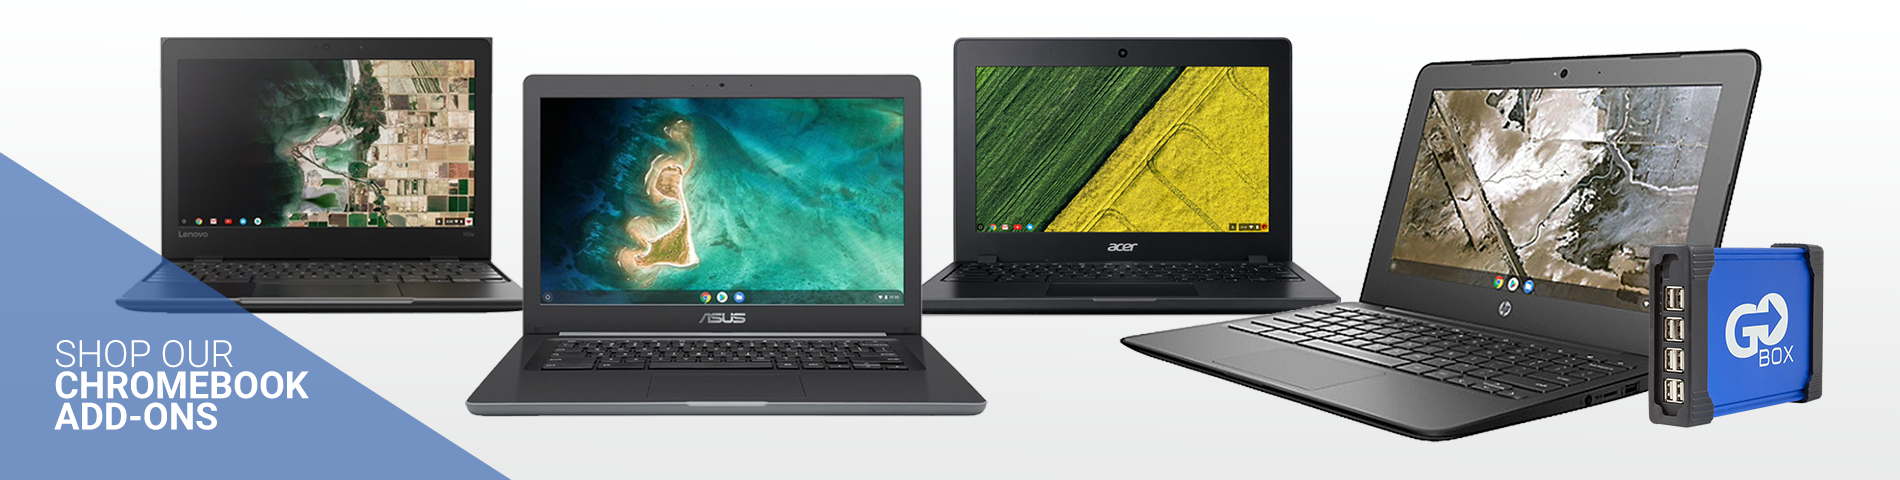 Chromebook Add-ons